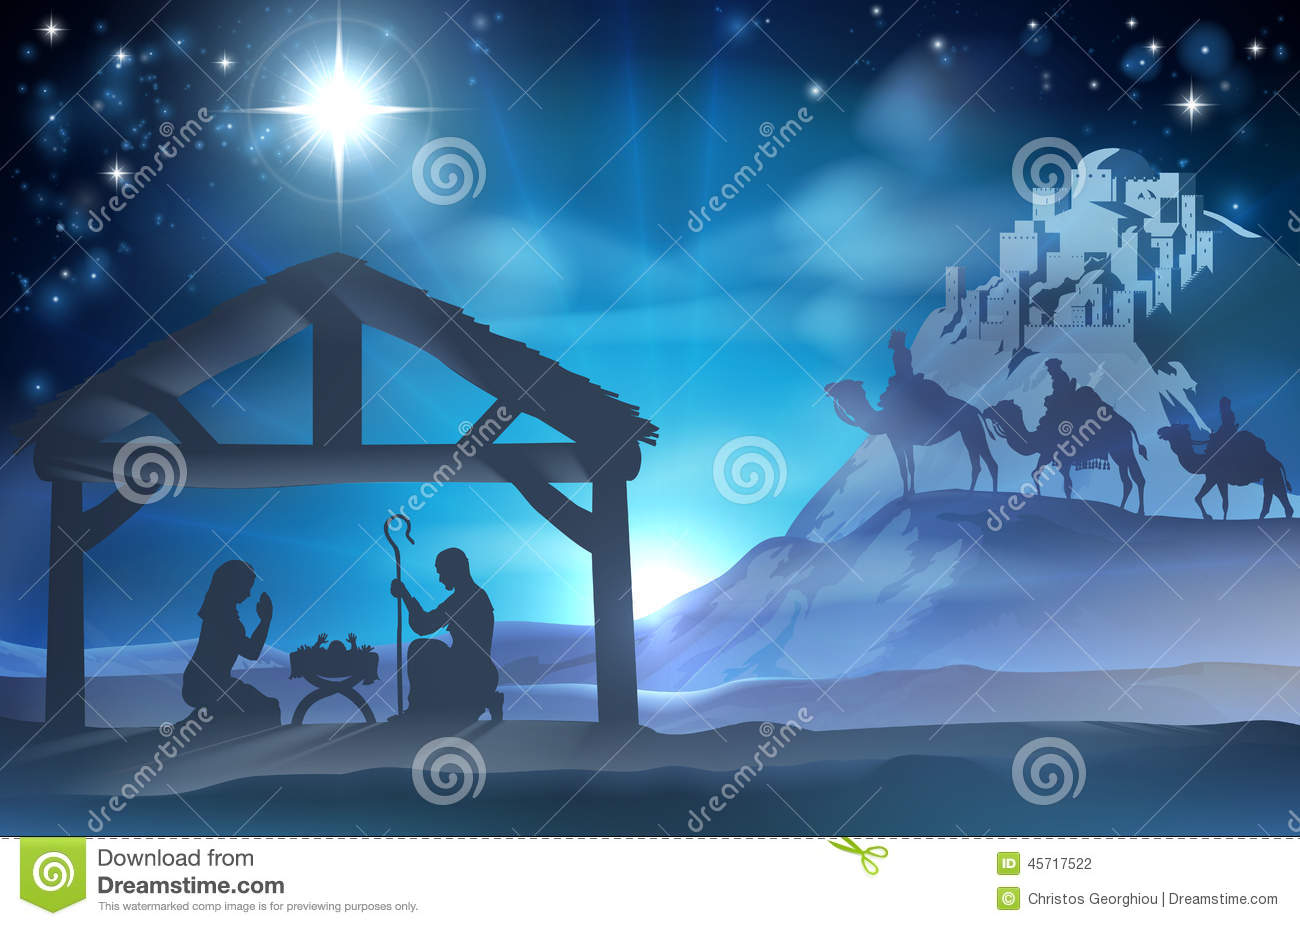 ... baby Jesus in the manger with Mary and Joseph and the three wise men